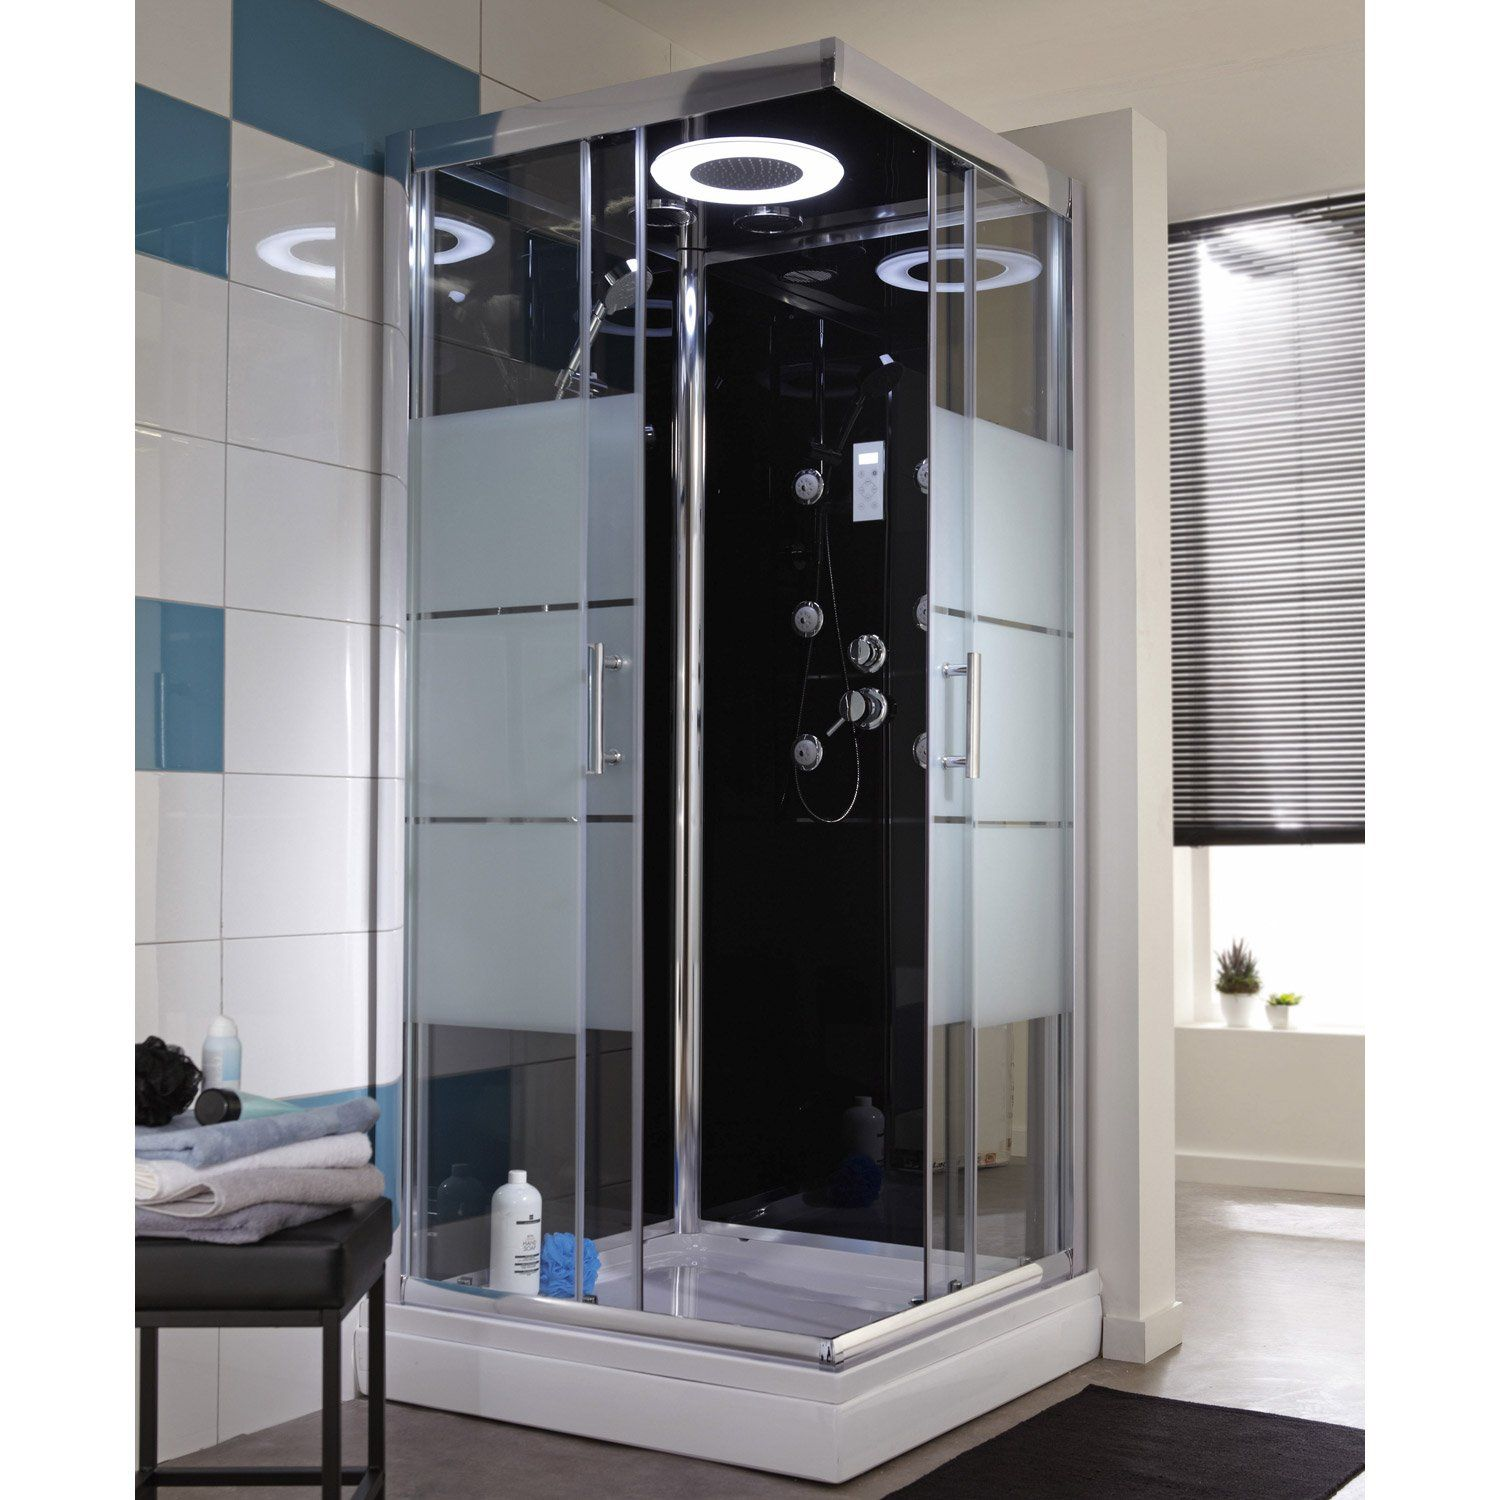 cabine de douche carr 90x90 cm optima2 noire en 2019 bonnes affaires pas cher cabine de. Black Bedroom Furniture Sets. Home Design Ideas